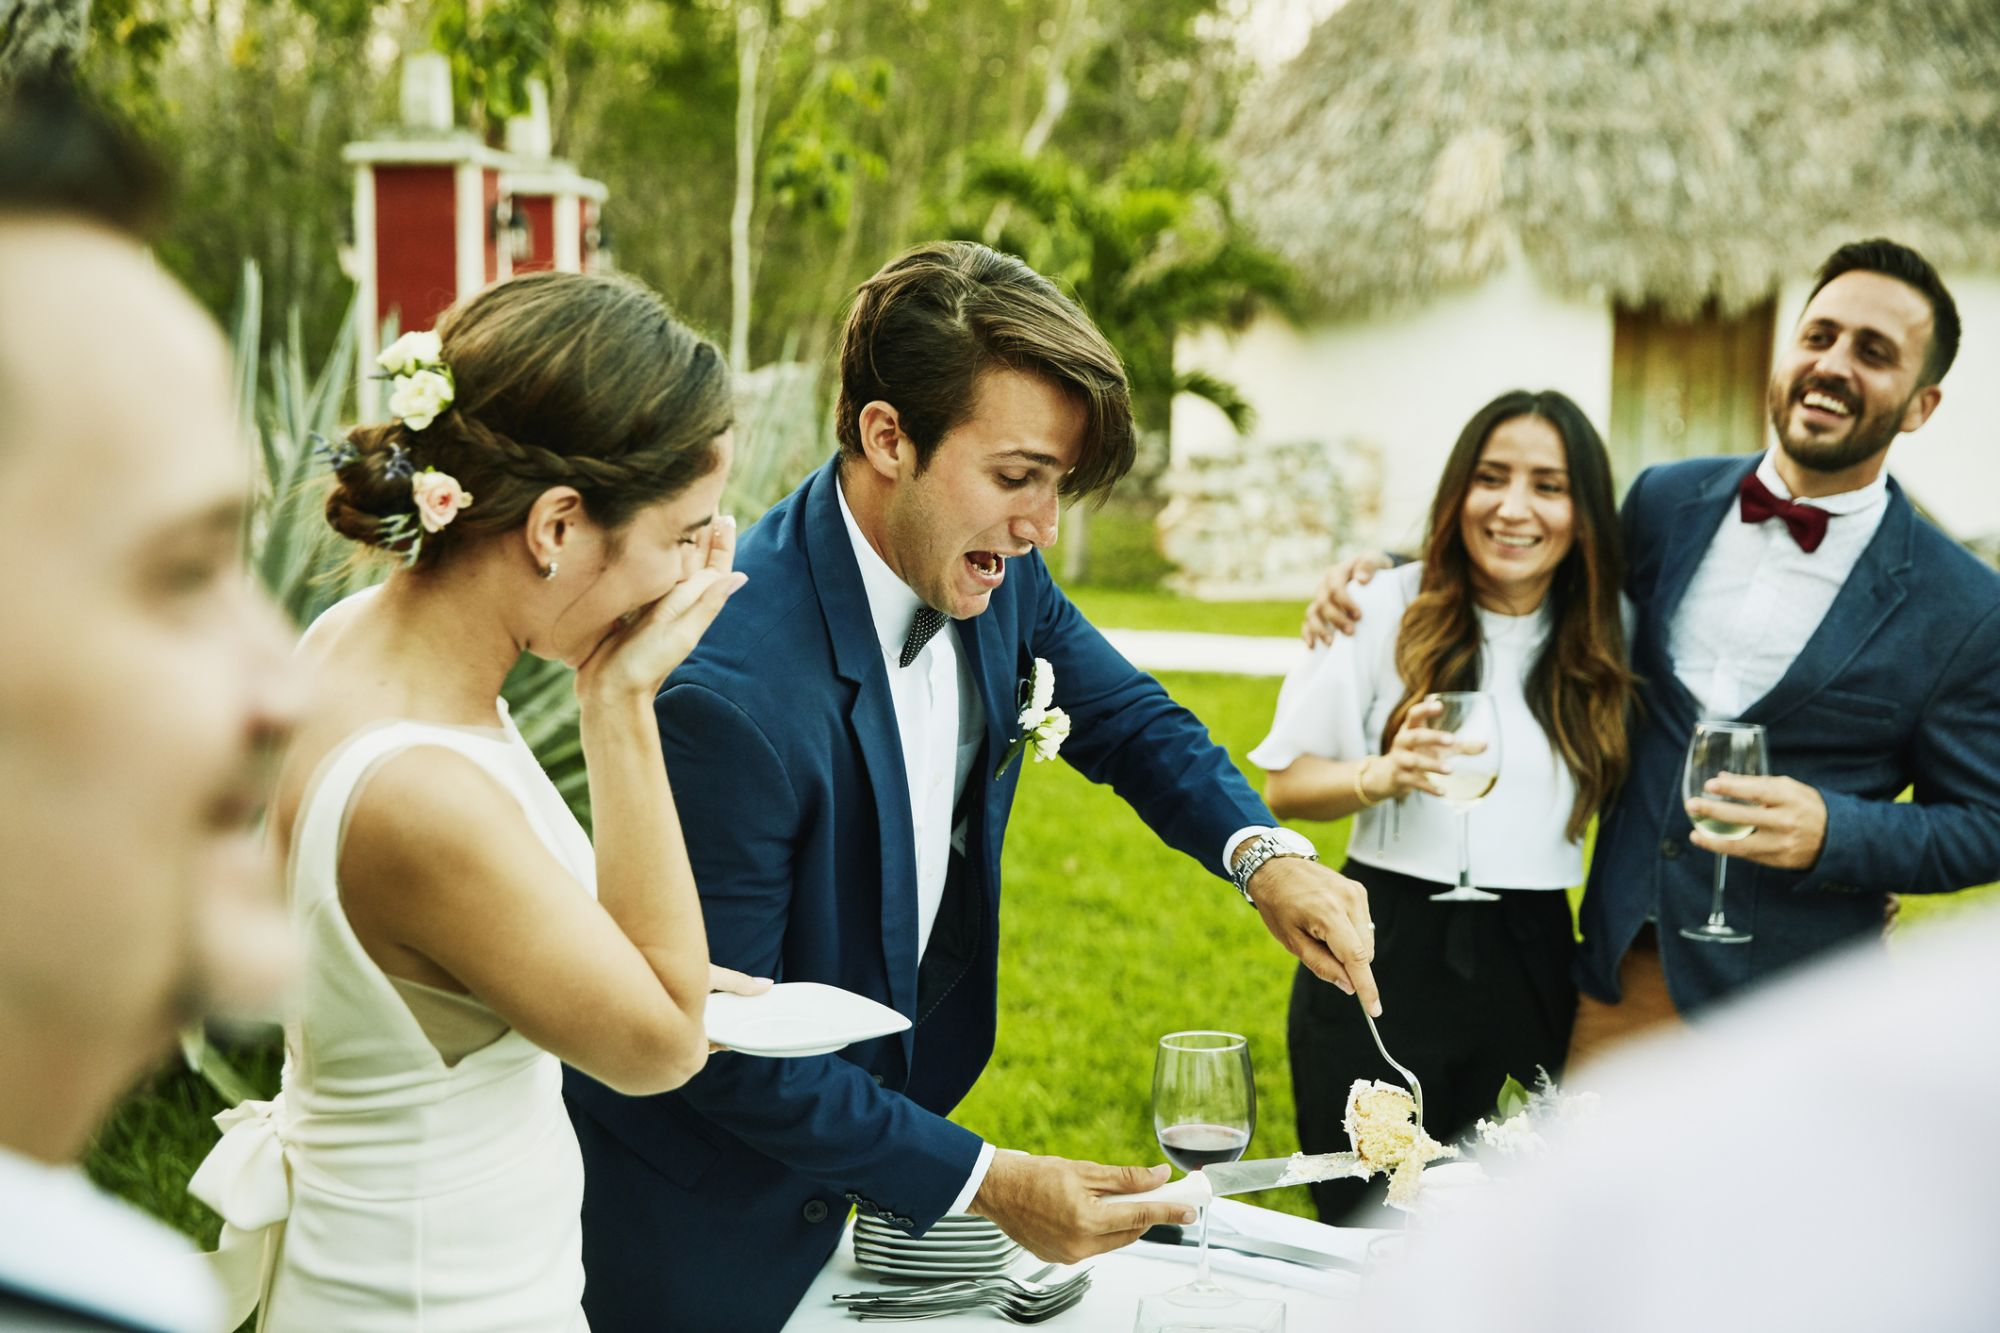 How Your Business Can Say 'I Do' to Millennial-Targeted Wedding Trends